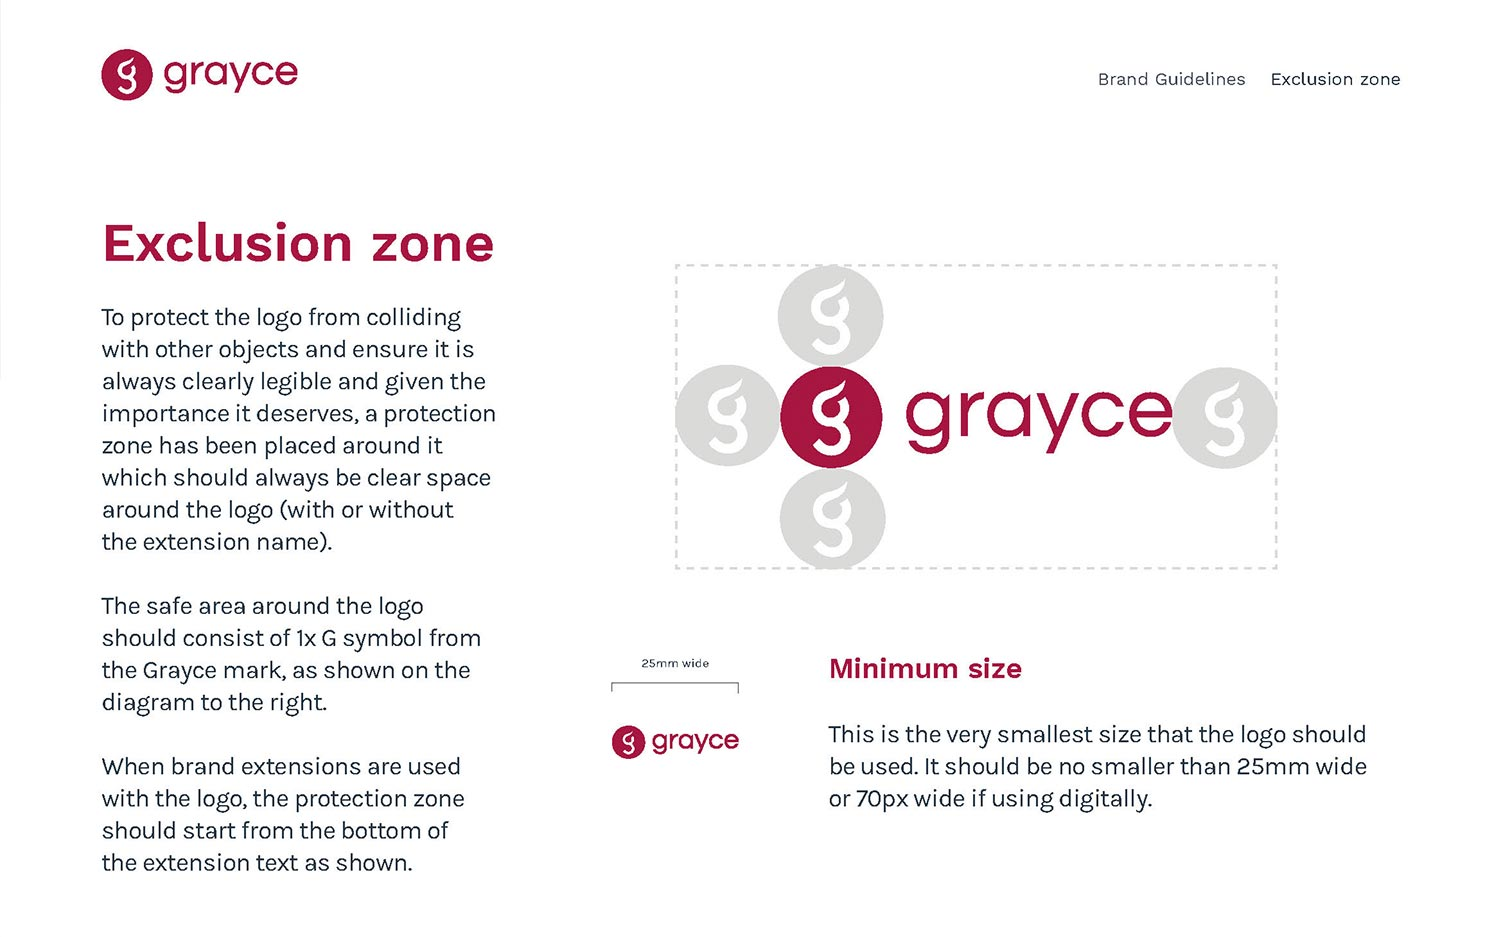 Grayce brand guidelines